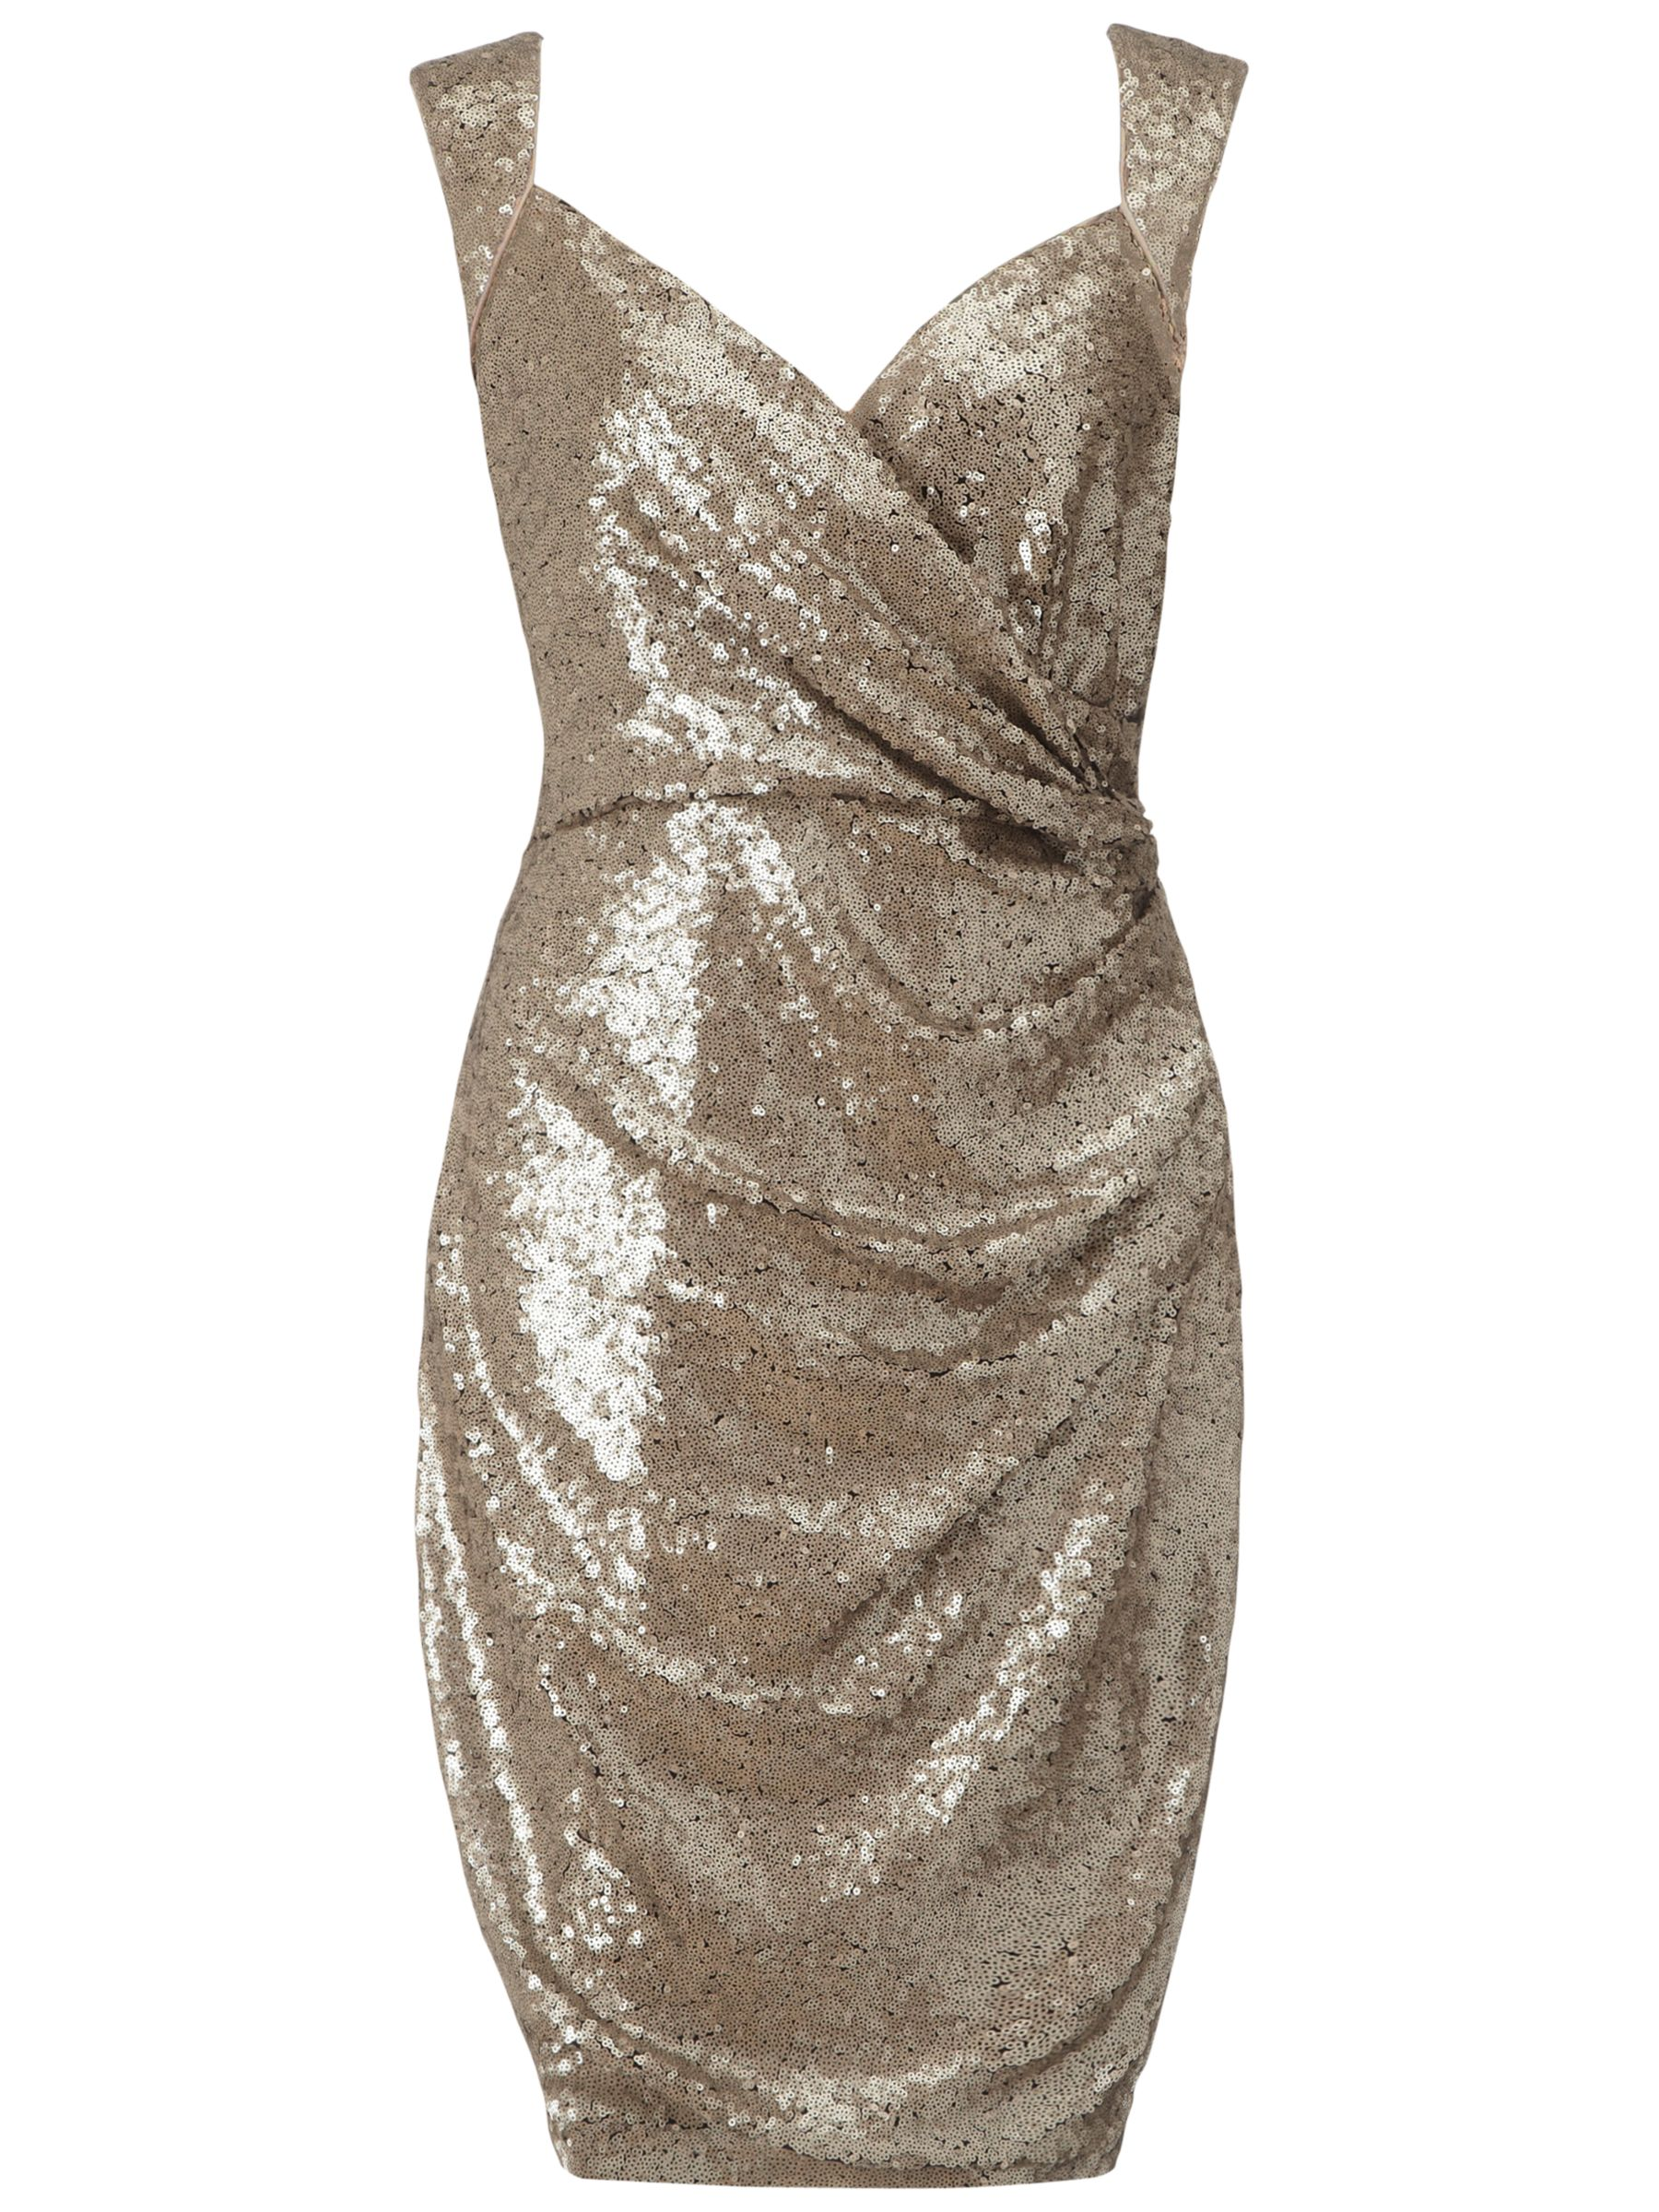 ariella florence sequin pencil dress gold, ariella, florence, sequin, pencil, dress, gold, 8|10|18|16|14|12, clearance, womenswear offers, womens dresses offers, new years party offers, women, plus size, inactive womenswear, new reductions, womens dresses, party outfits, party dresses, special offers, edition magazine, embellishment, buyers top picks, 1697266